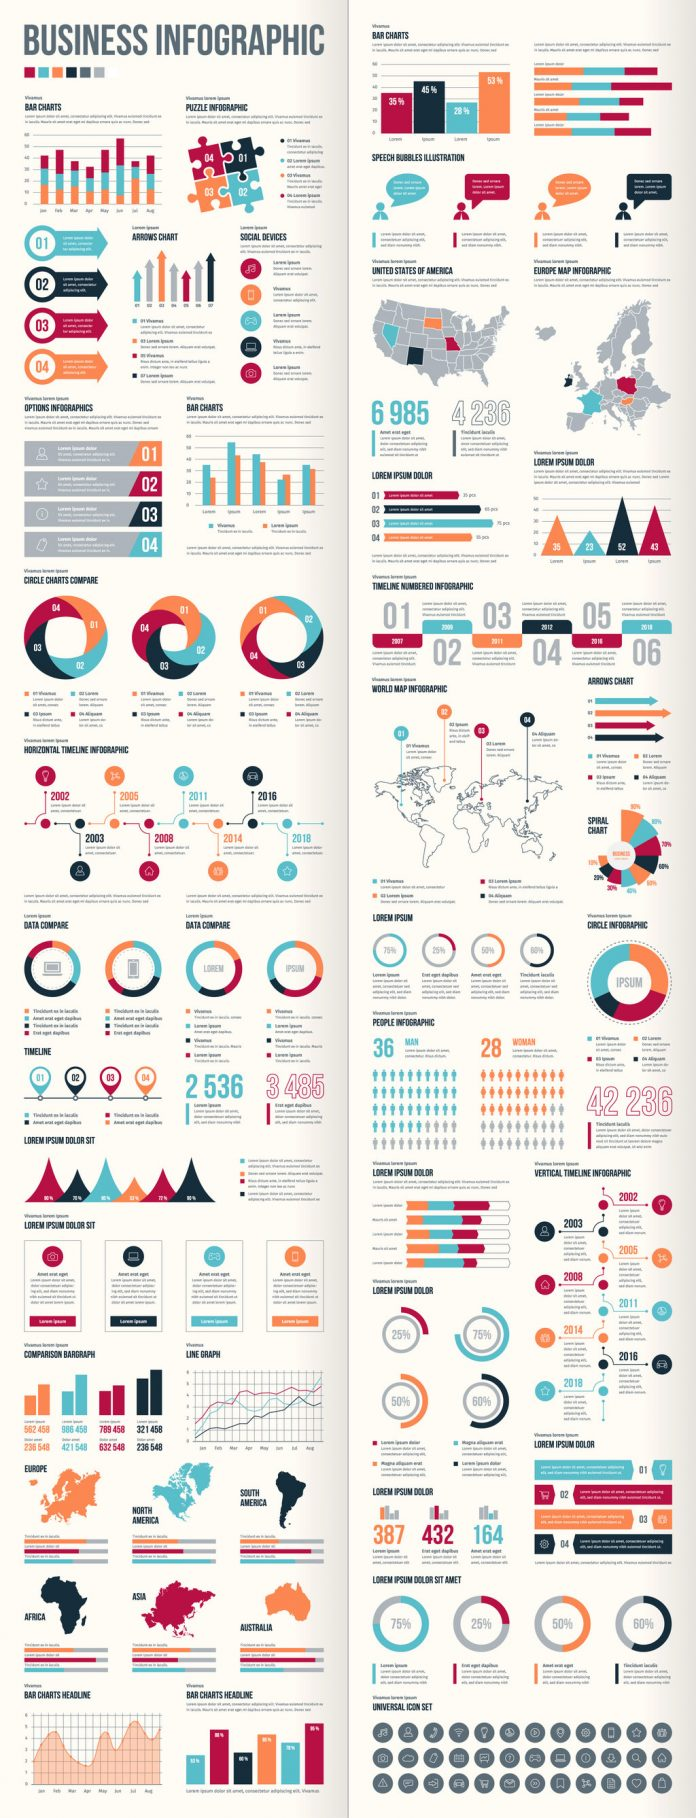 Adobe Stock Business Infographic Set by @Petr.